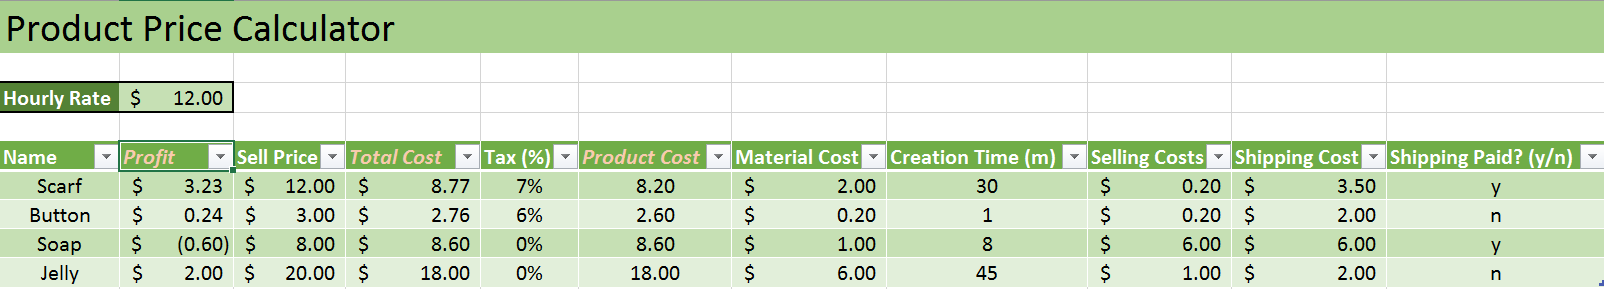 Product Management - Price Calculator